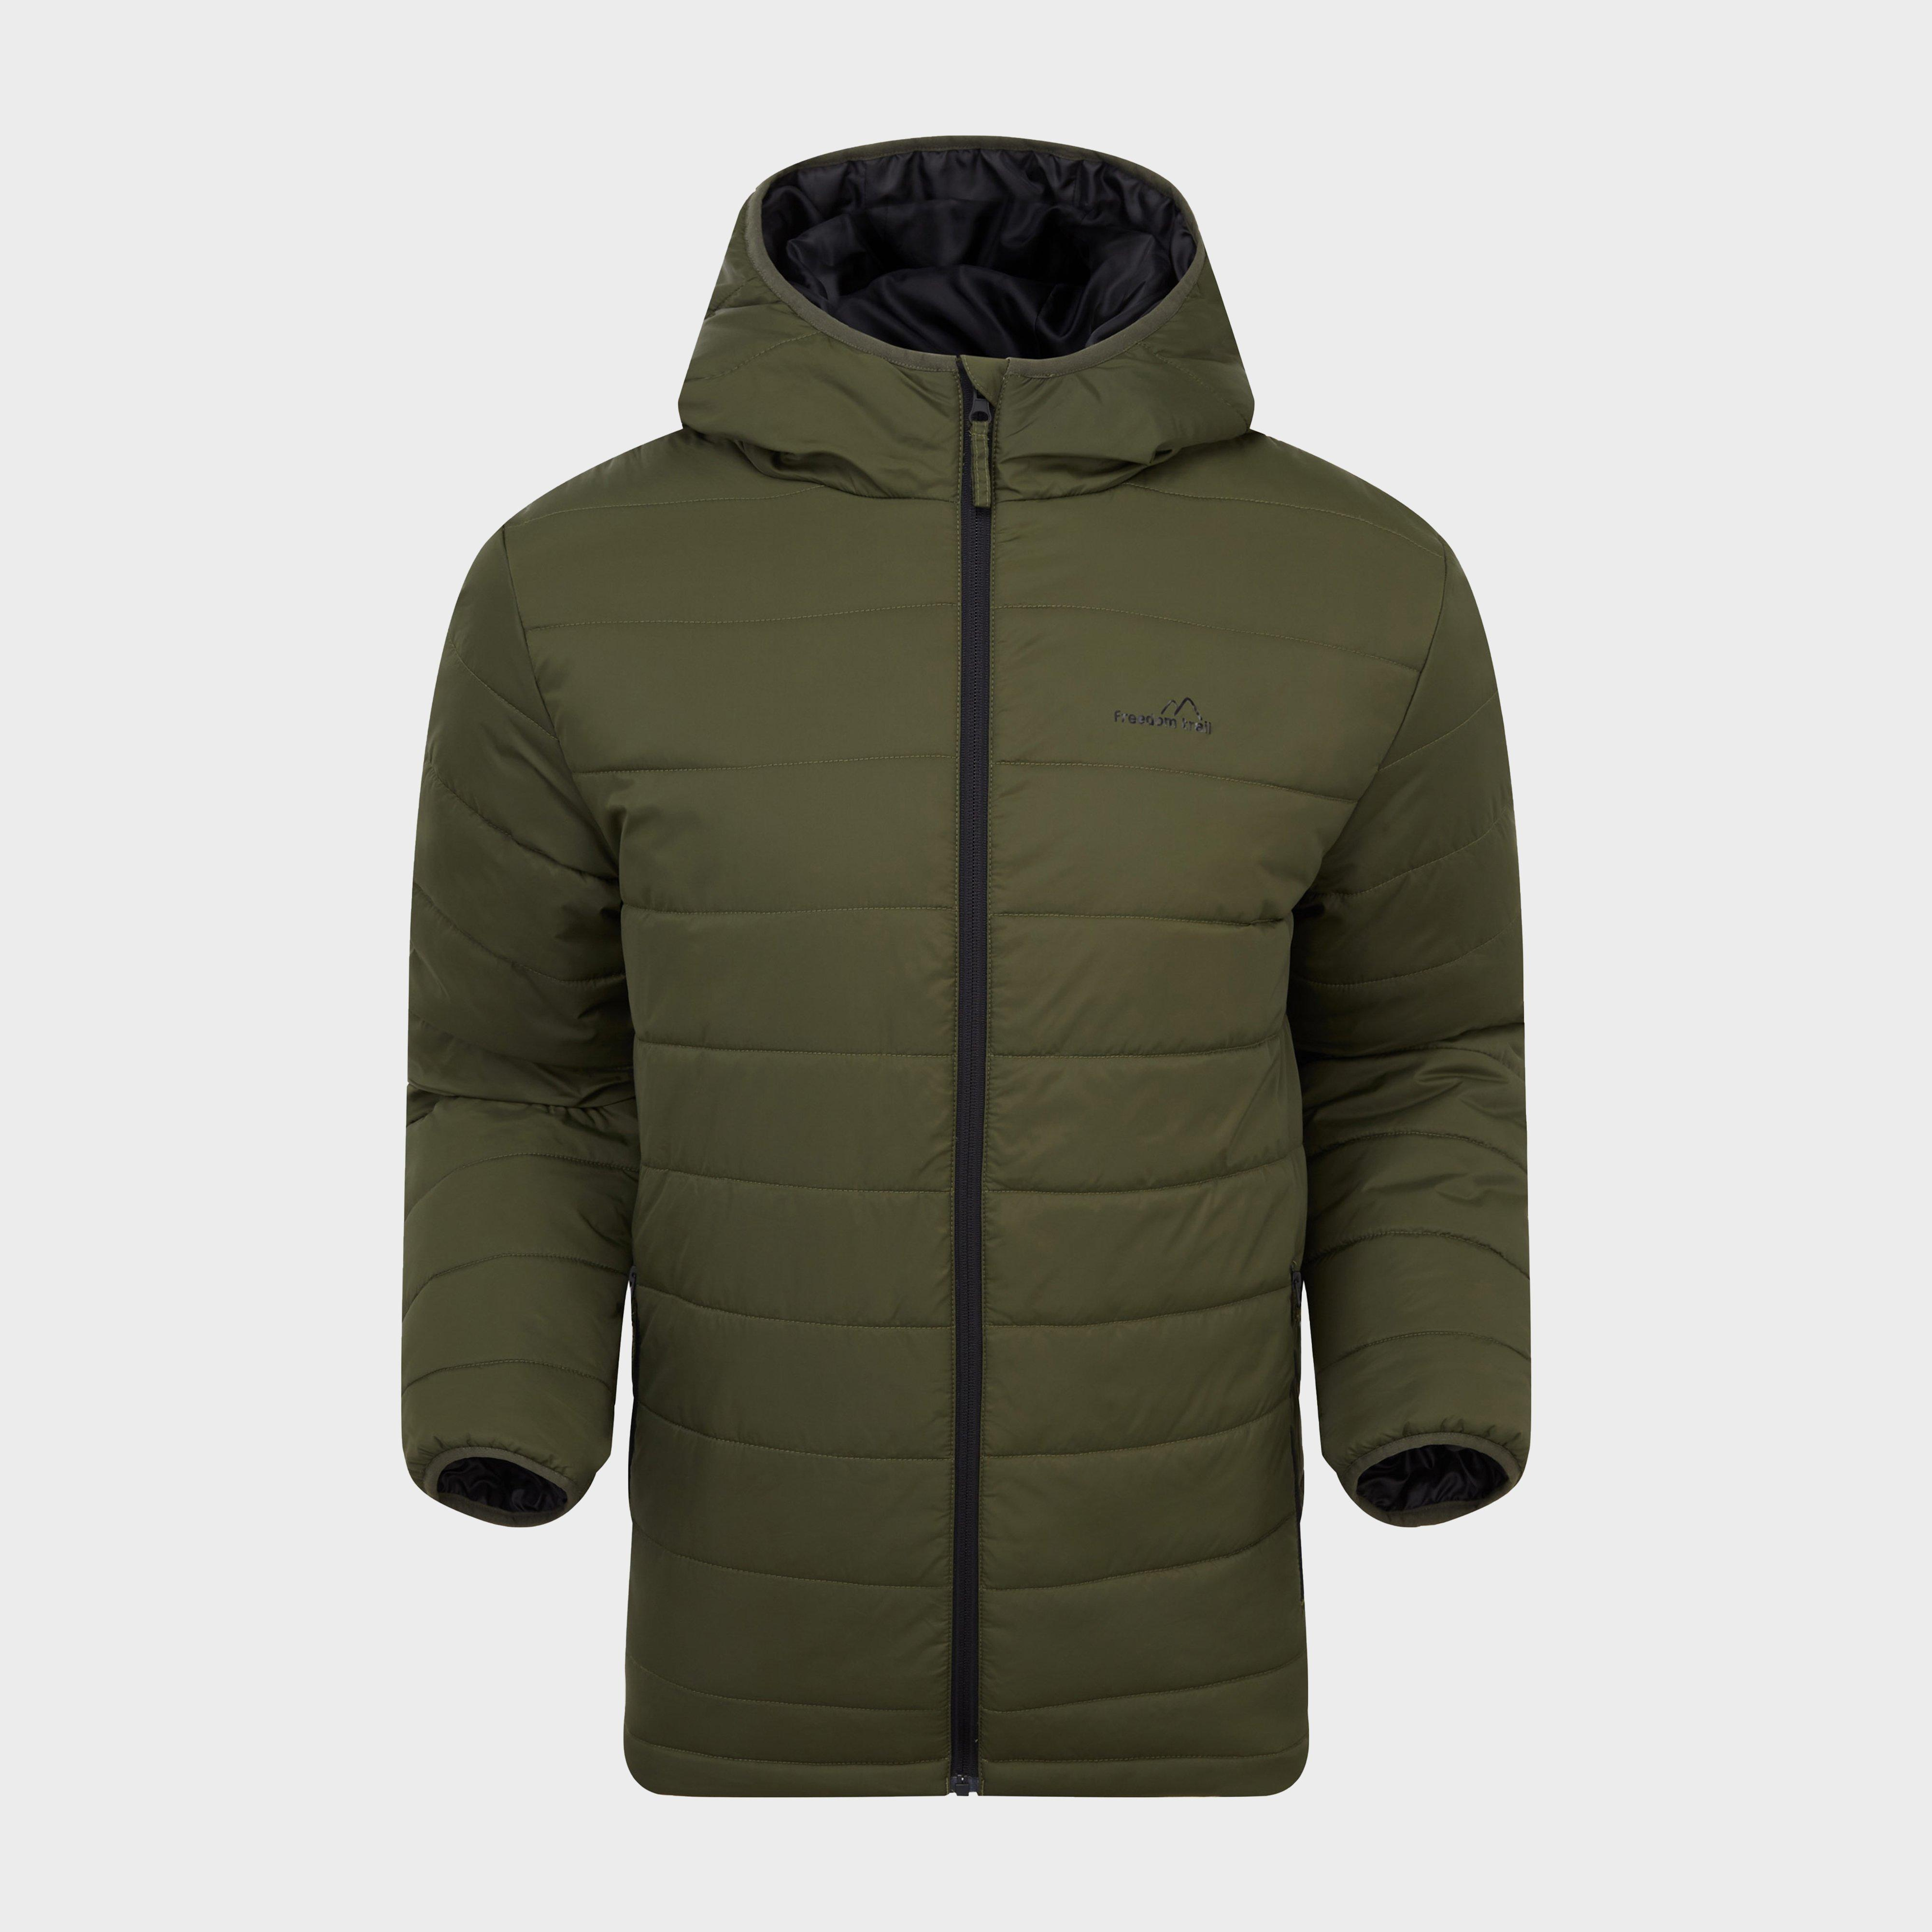 Freedomtrail Freedomtrail Mens Blisco Insulated Jacket, Green